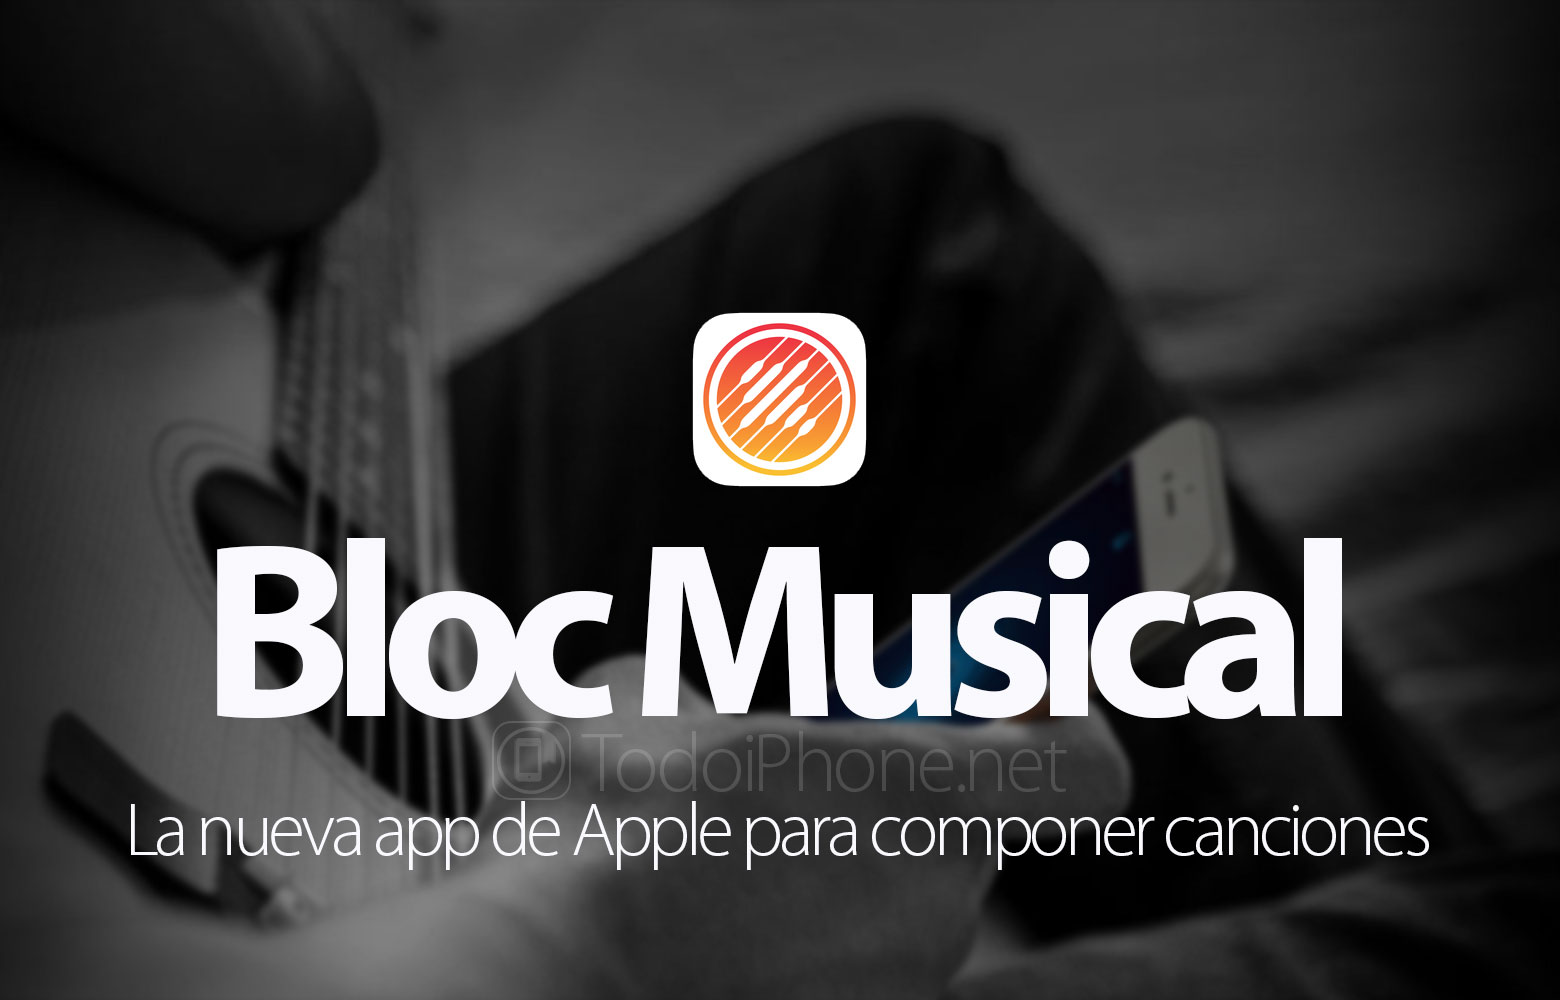 Bloc Musical, the new app of Apple to compose songs with the iPhone 4